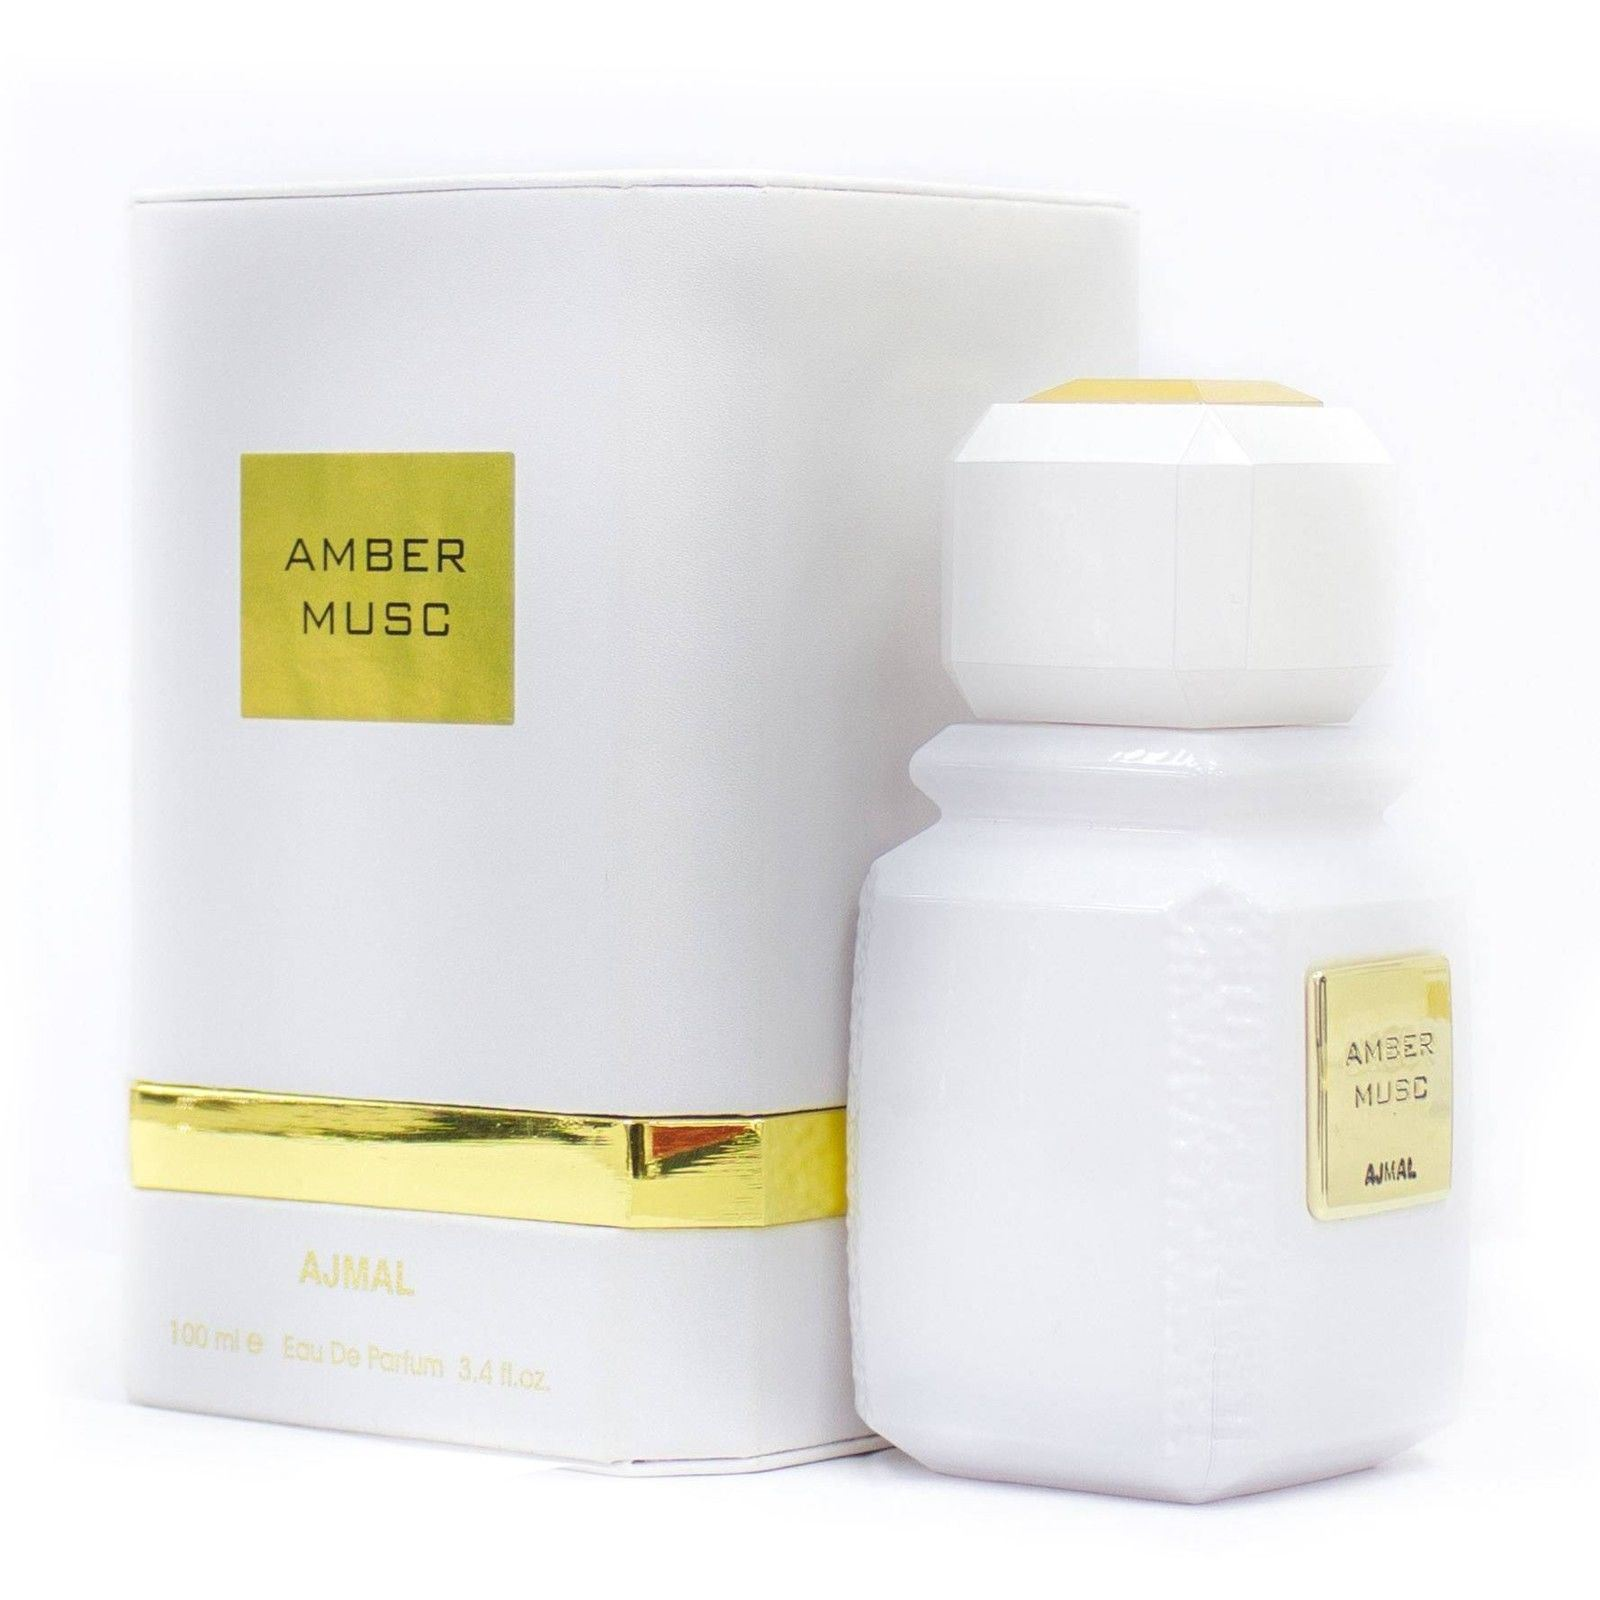 Amber Musc Masterpiece by Ajmal 100ml Unisex EDP Floral